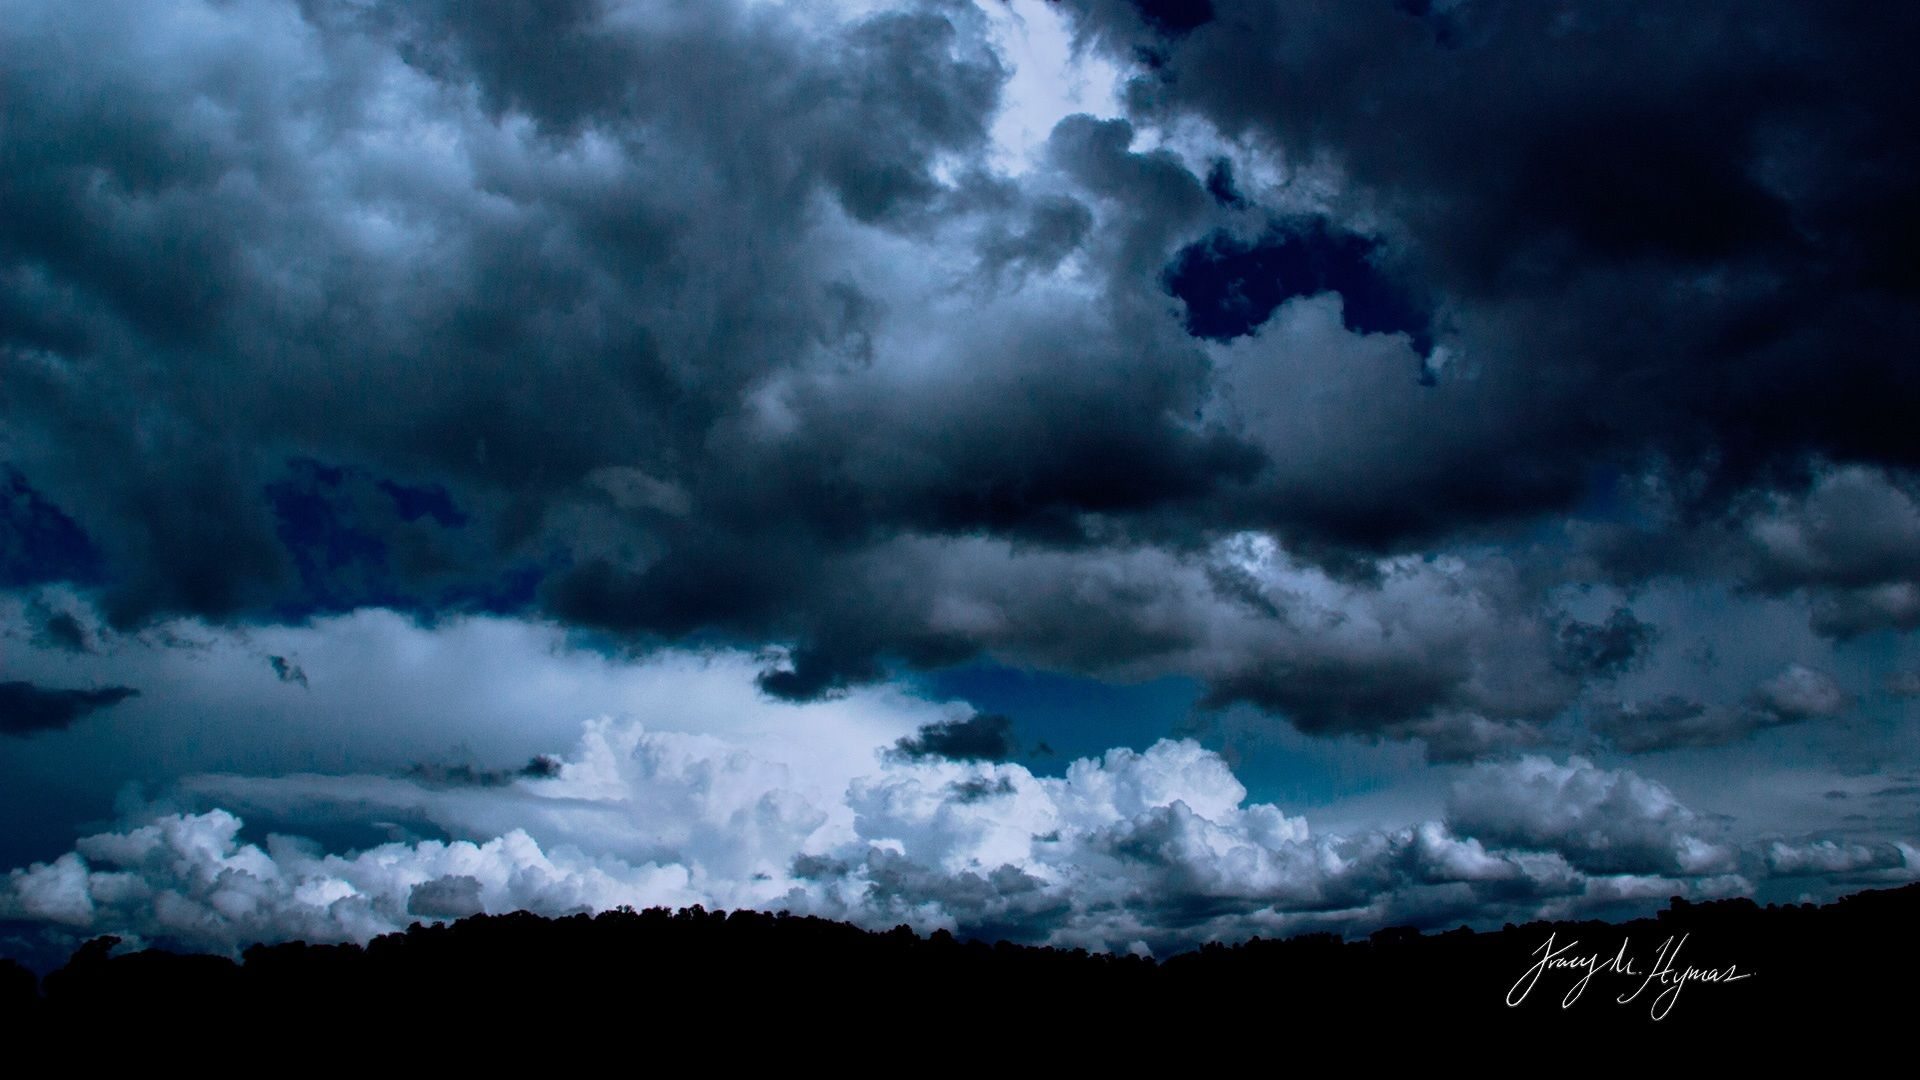 storm hd wallpapers 1080p